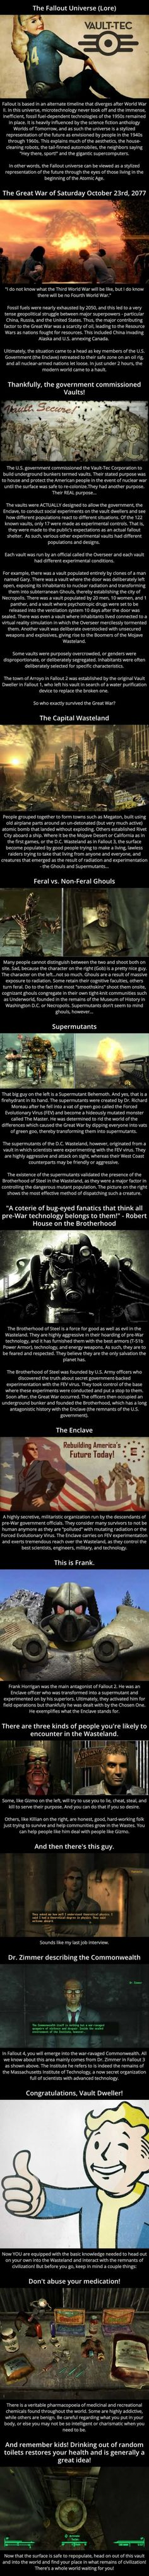 The Fallout Universe And Lore - 9GAG